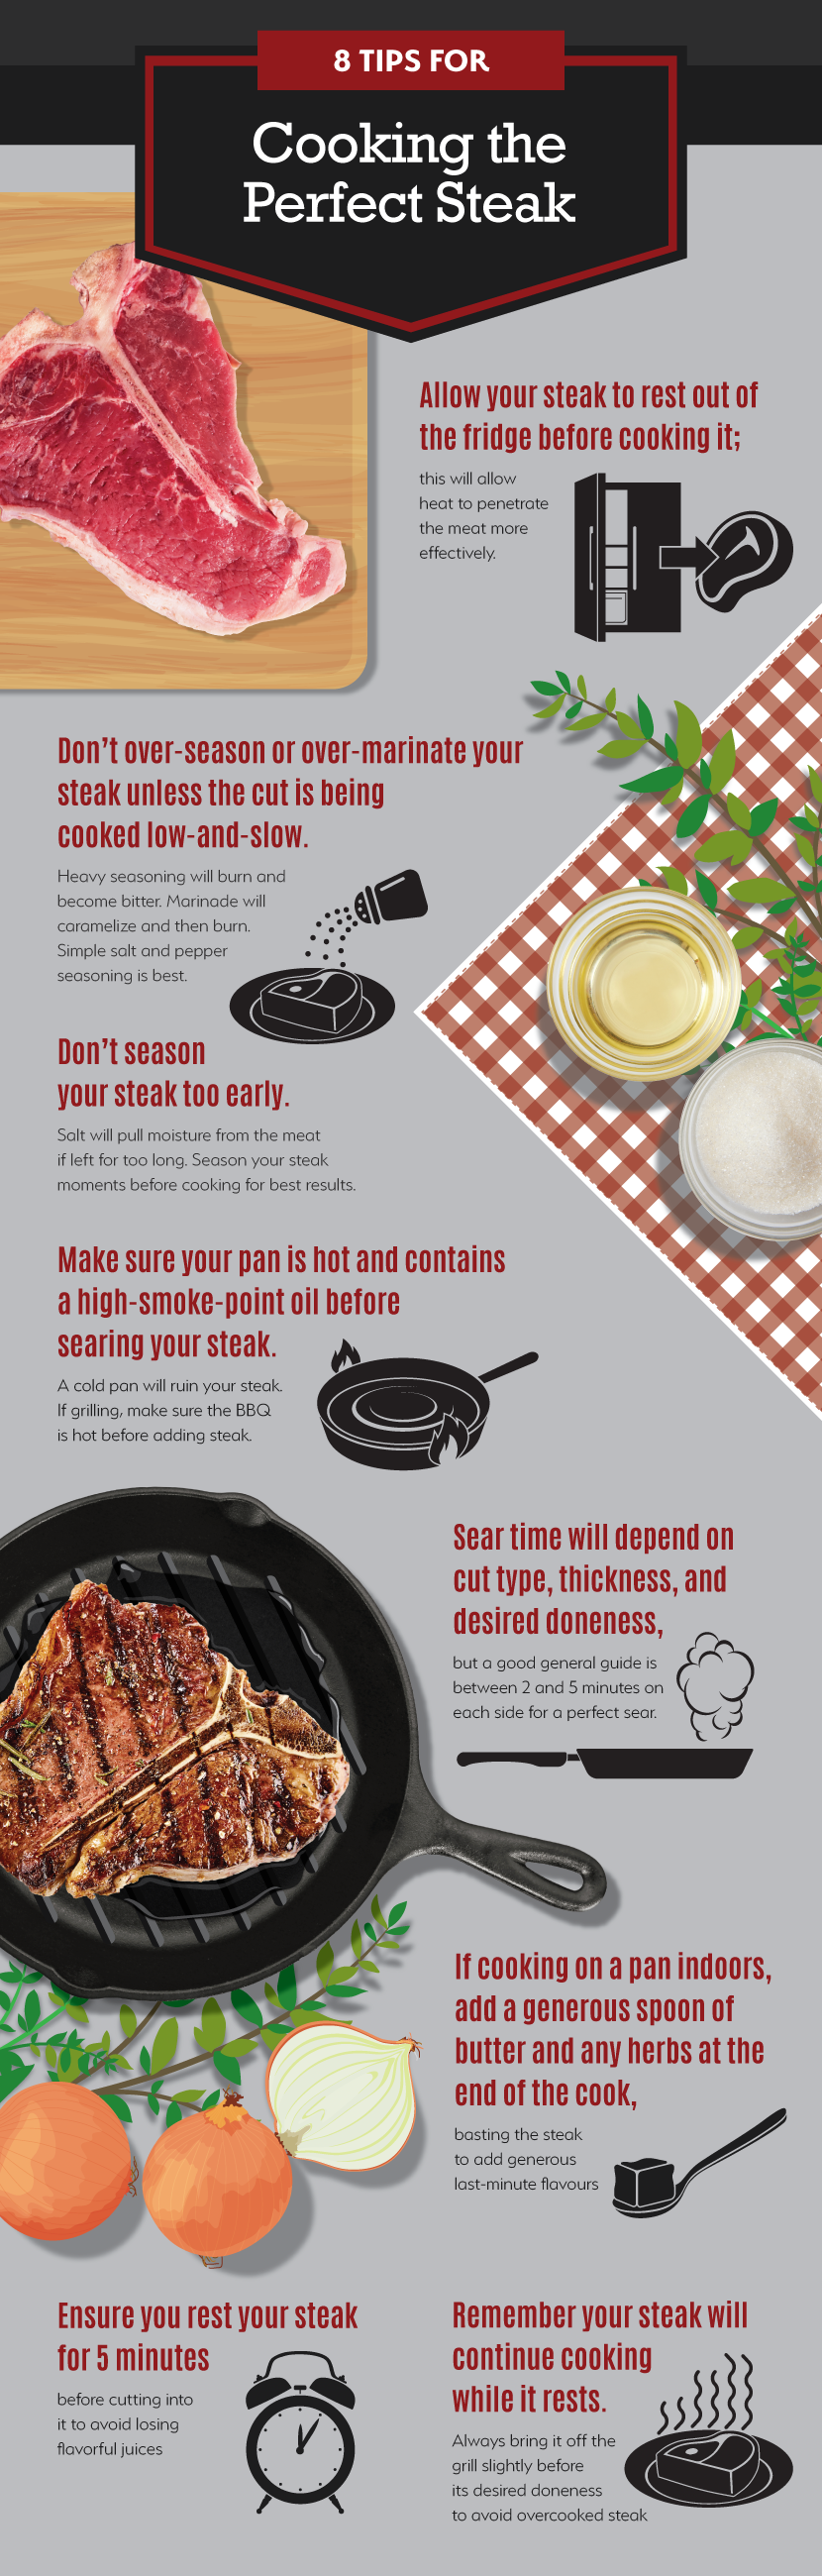 How to Cook Steak - 8 Tips for Cooking Steak